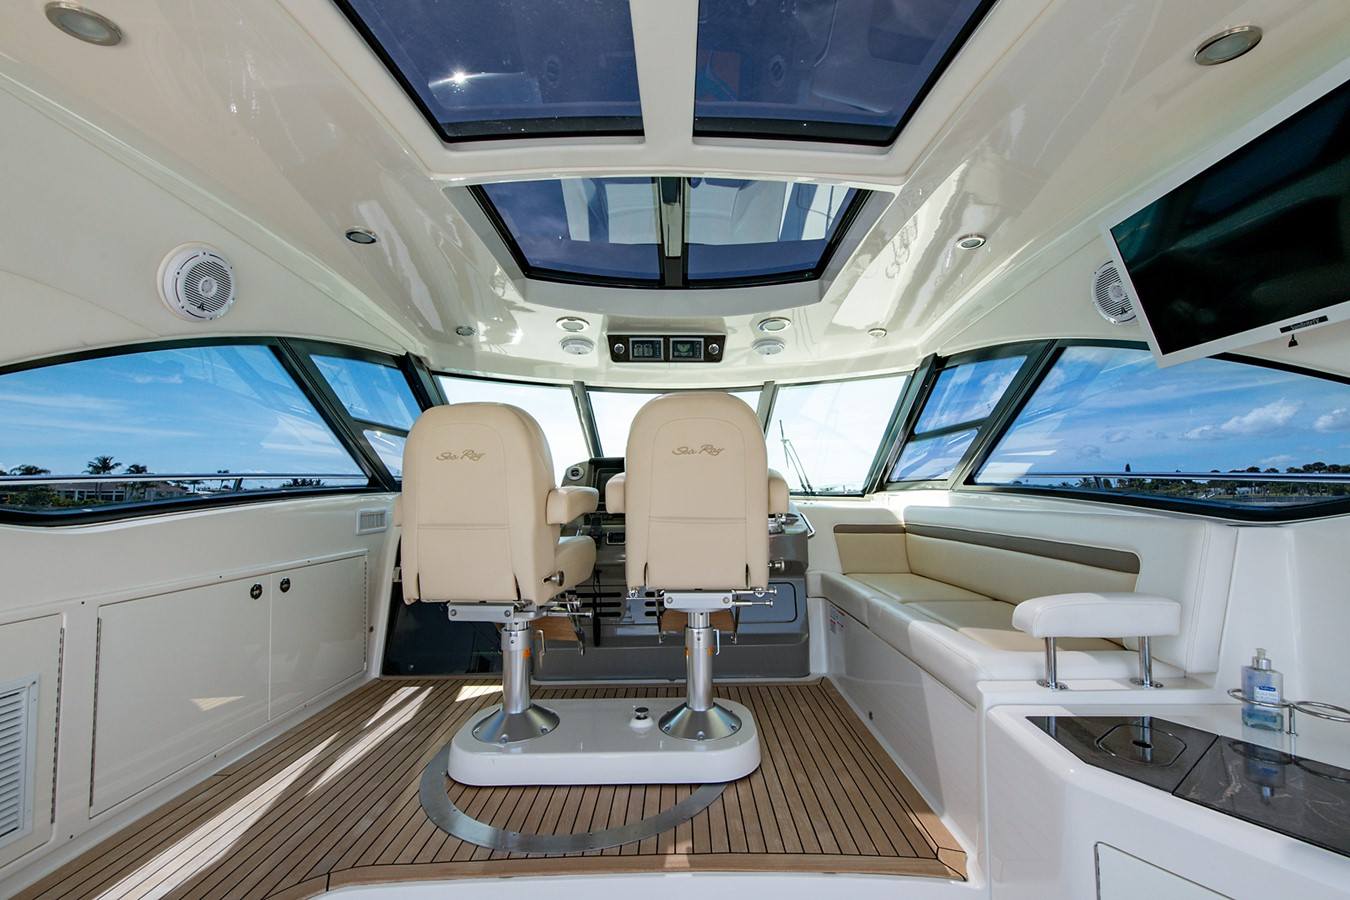 2013 SEA RAY Sundancer Motor Yacht 2531152